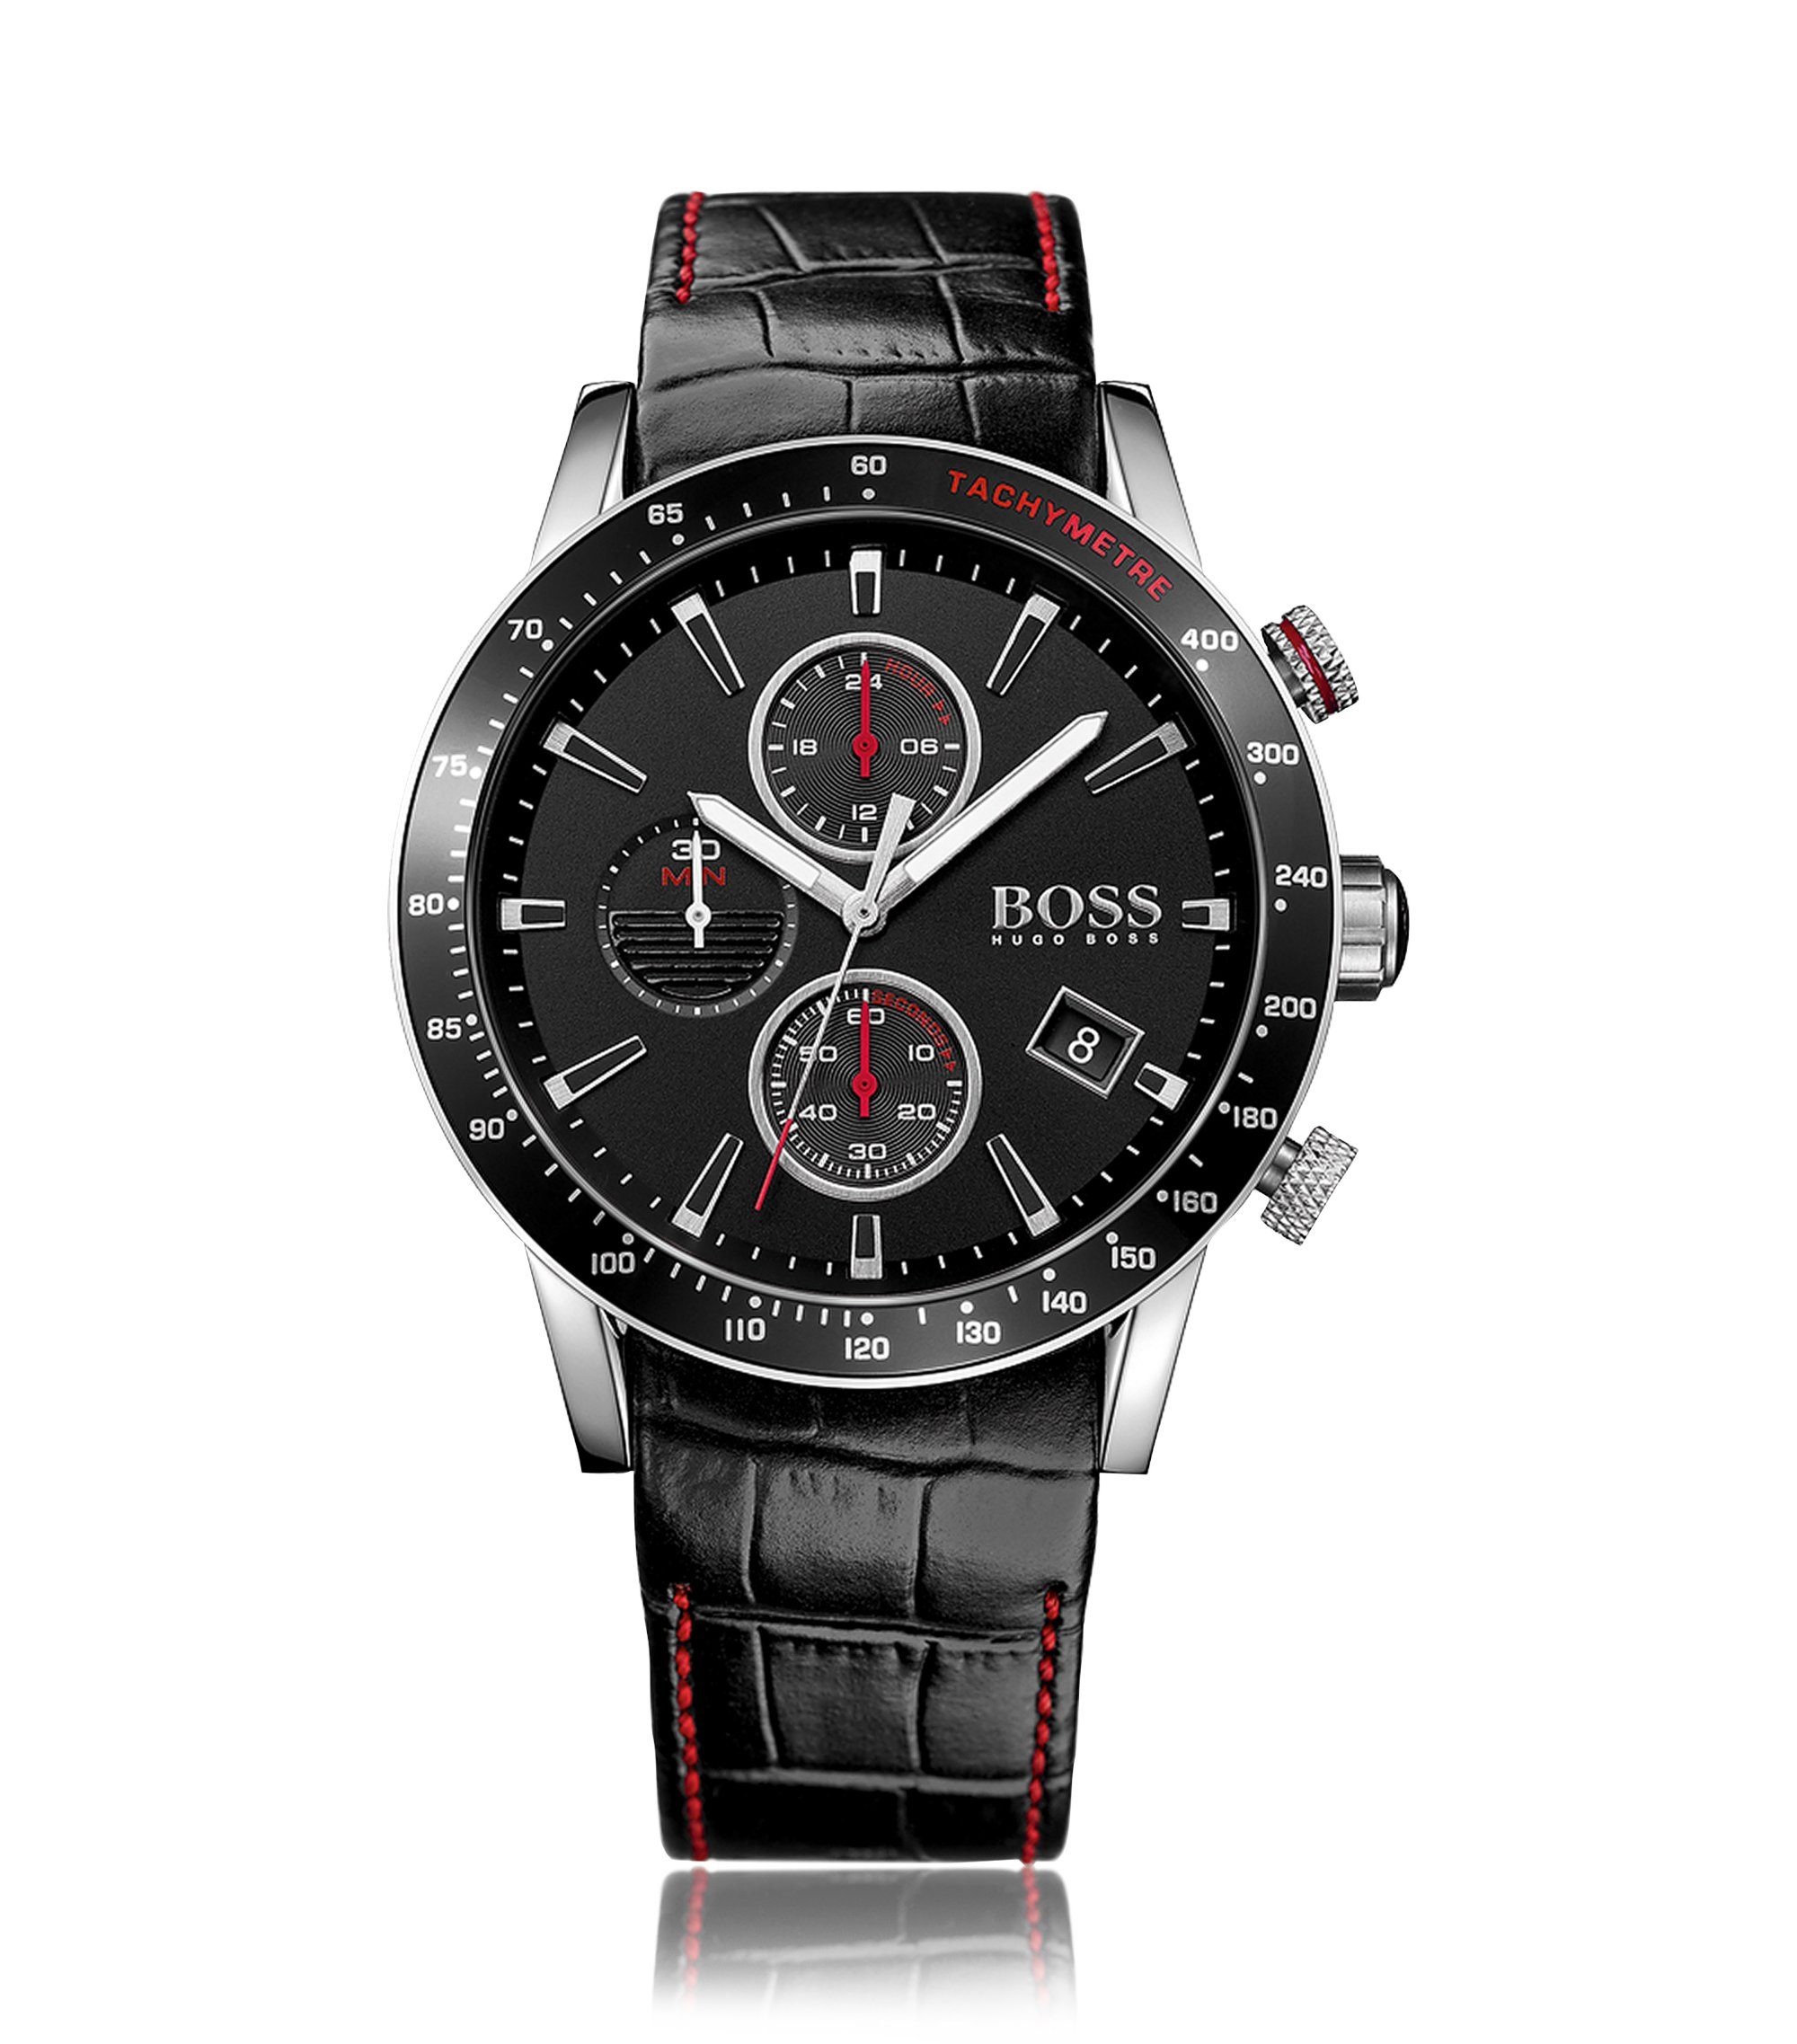 Black stainless-steel chronograph watch with black dial and leather strap, Black